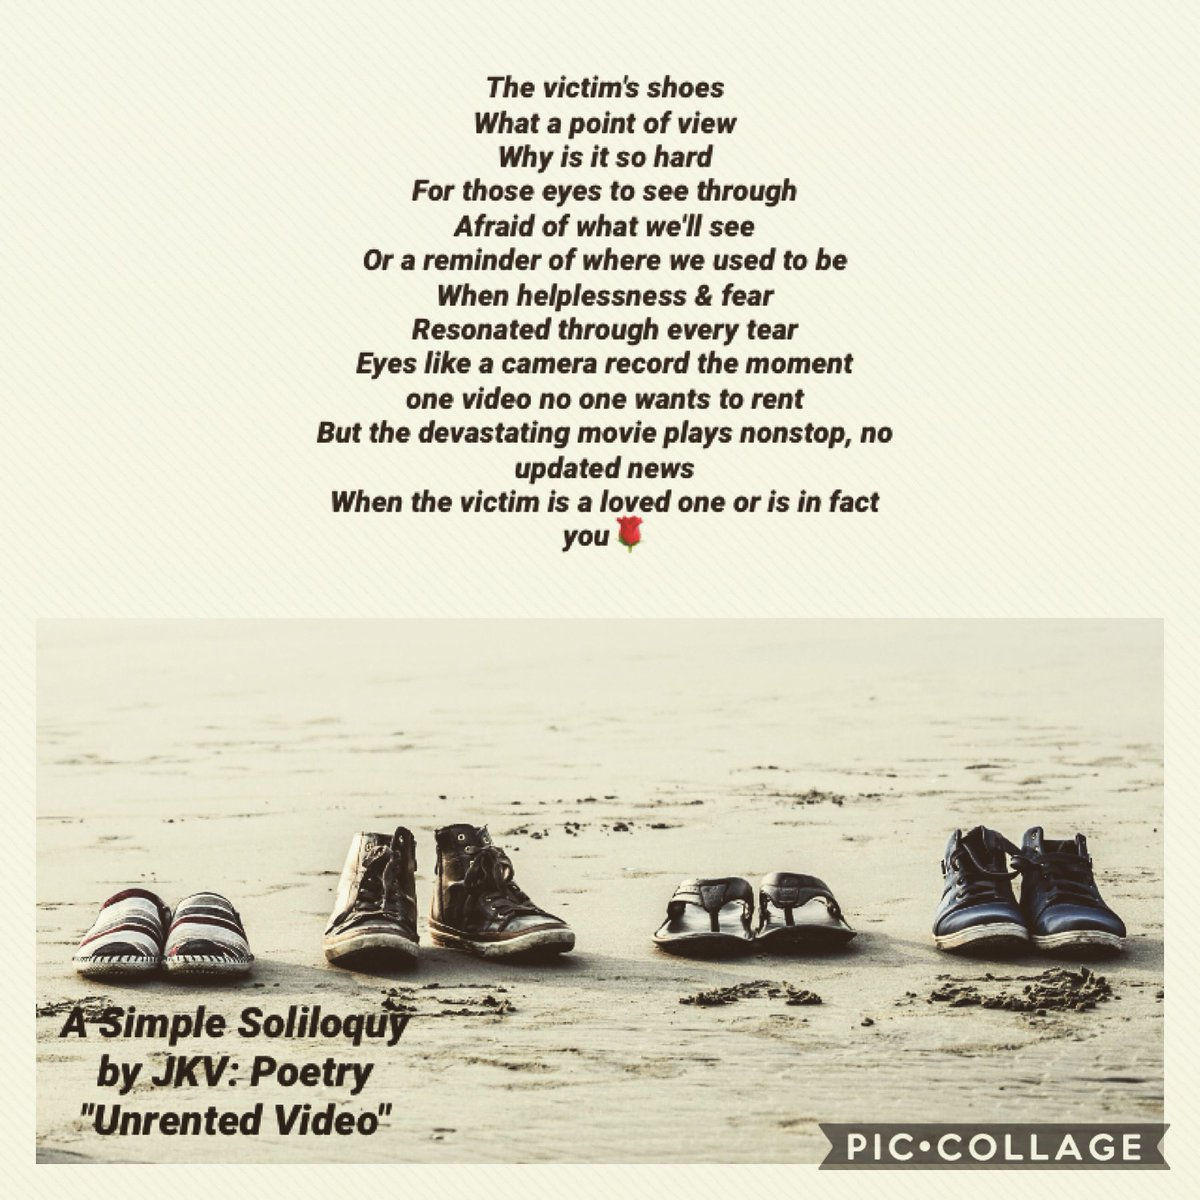 ☀️🌹 A Simple Soliloquy by JKV: Poetry  #writersoftwitter #amwriting #poem #WritingCommunity #writers #writing #writerslife #poetrycommunity #poetry #Mindset #writerscommunity #poetsoftwitter #thinking #creativewriting #micropoetry https://t.co/jVGSx5lM9P